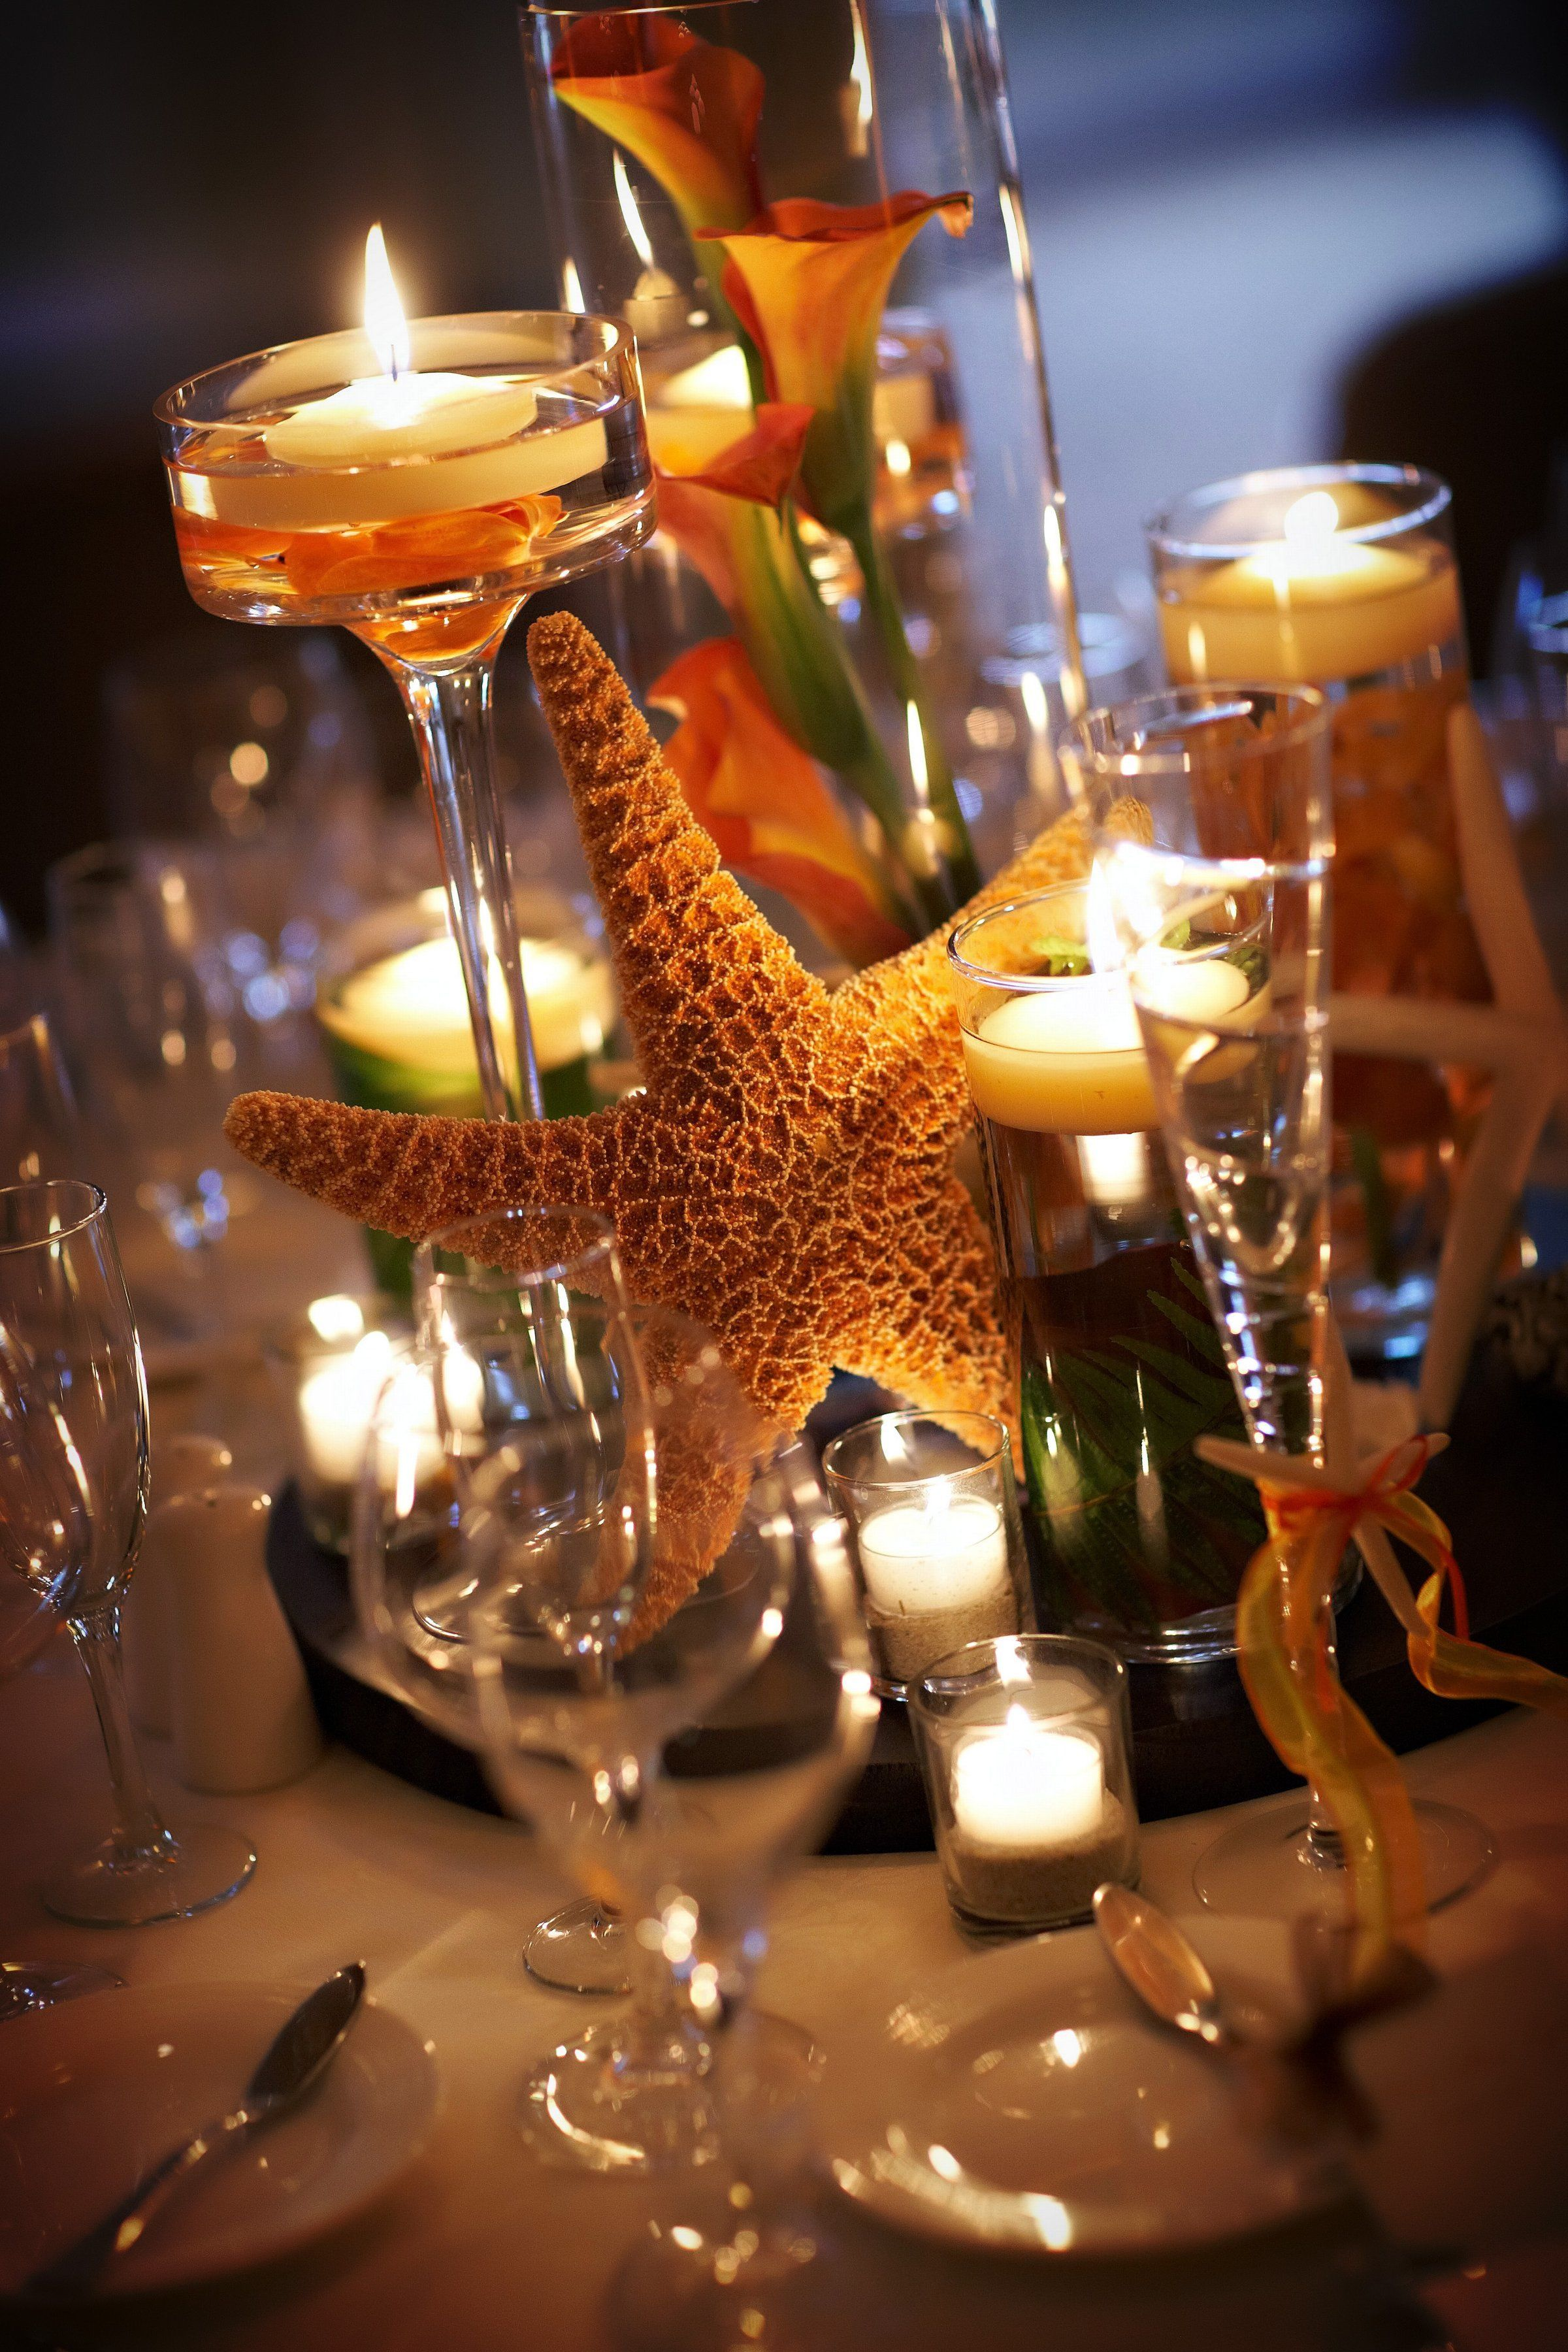 Whimsical starfish and candles lovely for a beach style dinner whimsical starfish and candles lovely for a beach style dinner junglespirit Gallery